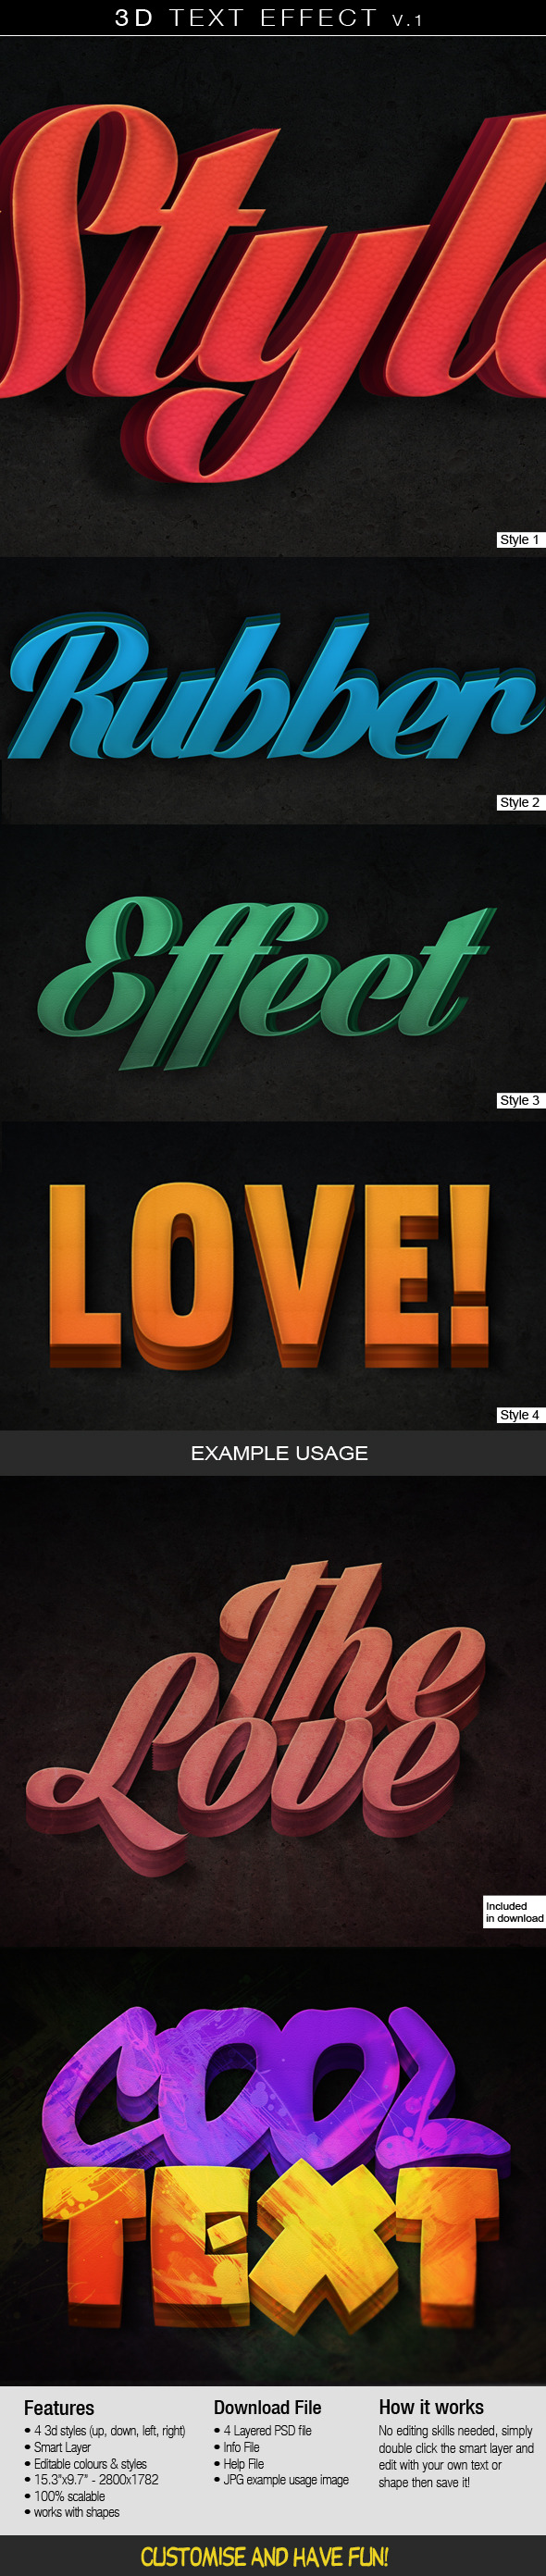 3D Text Effect v.1 - Photoshop Add-ons